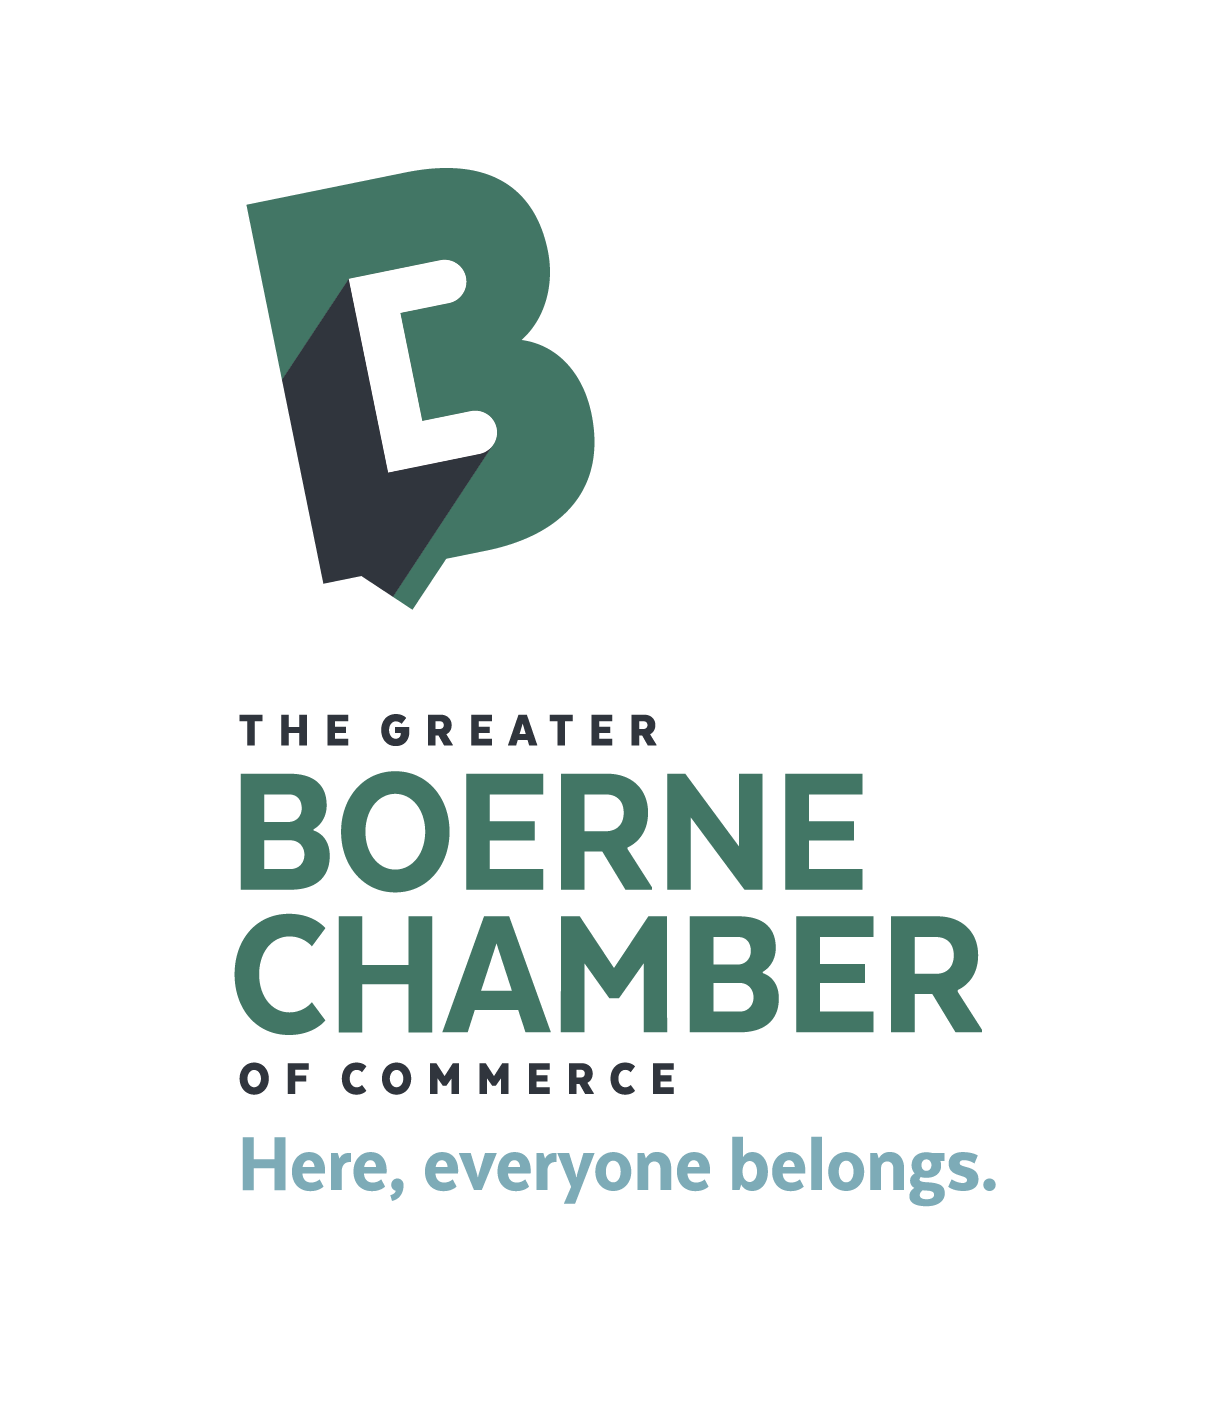 Boerne Chamber of Commerce